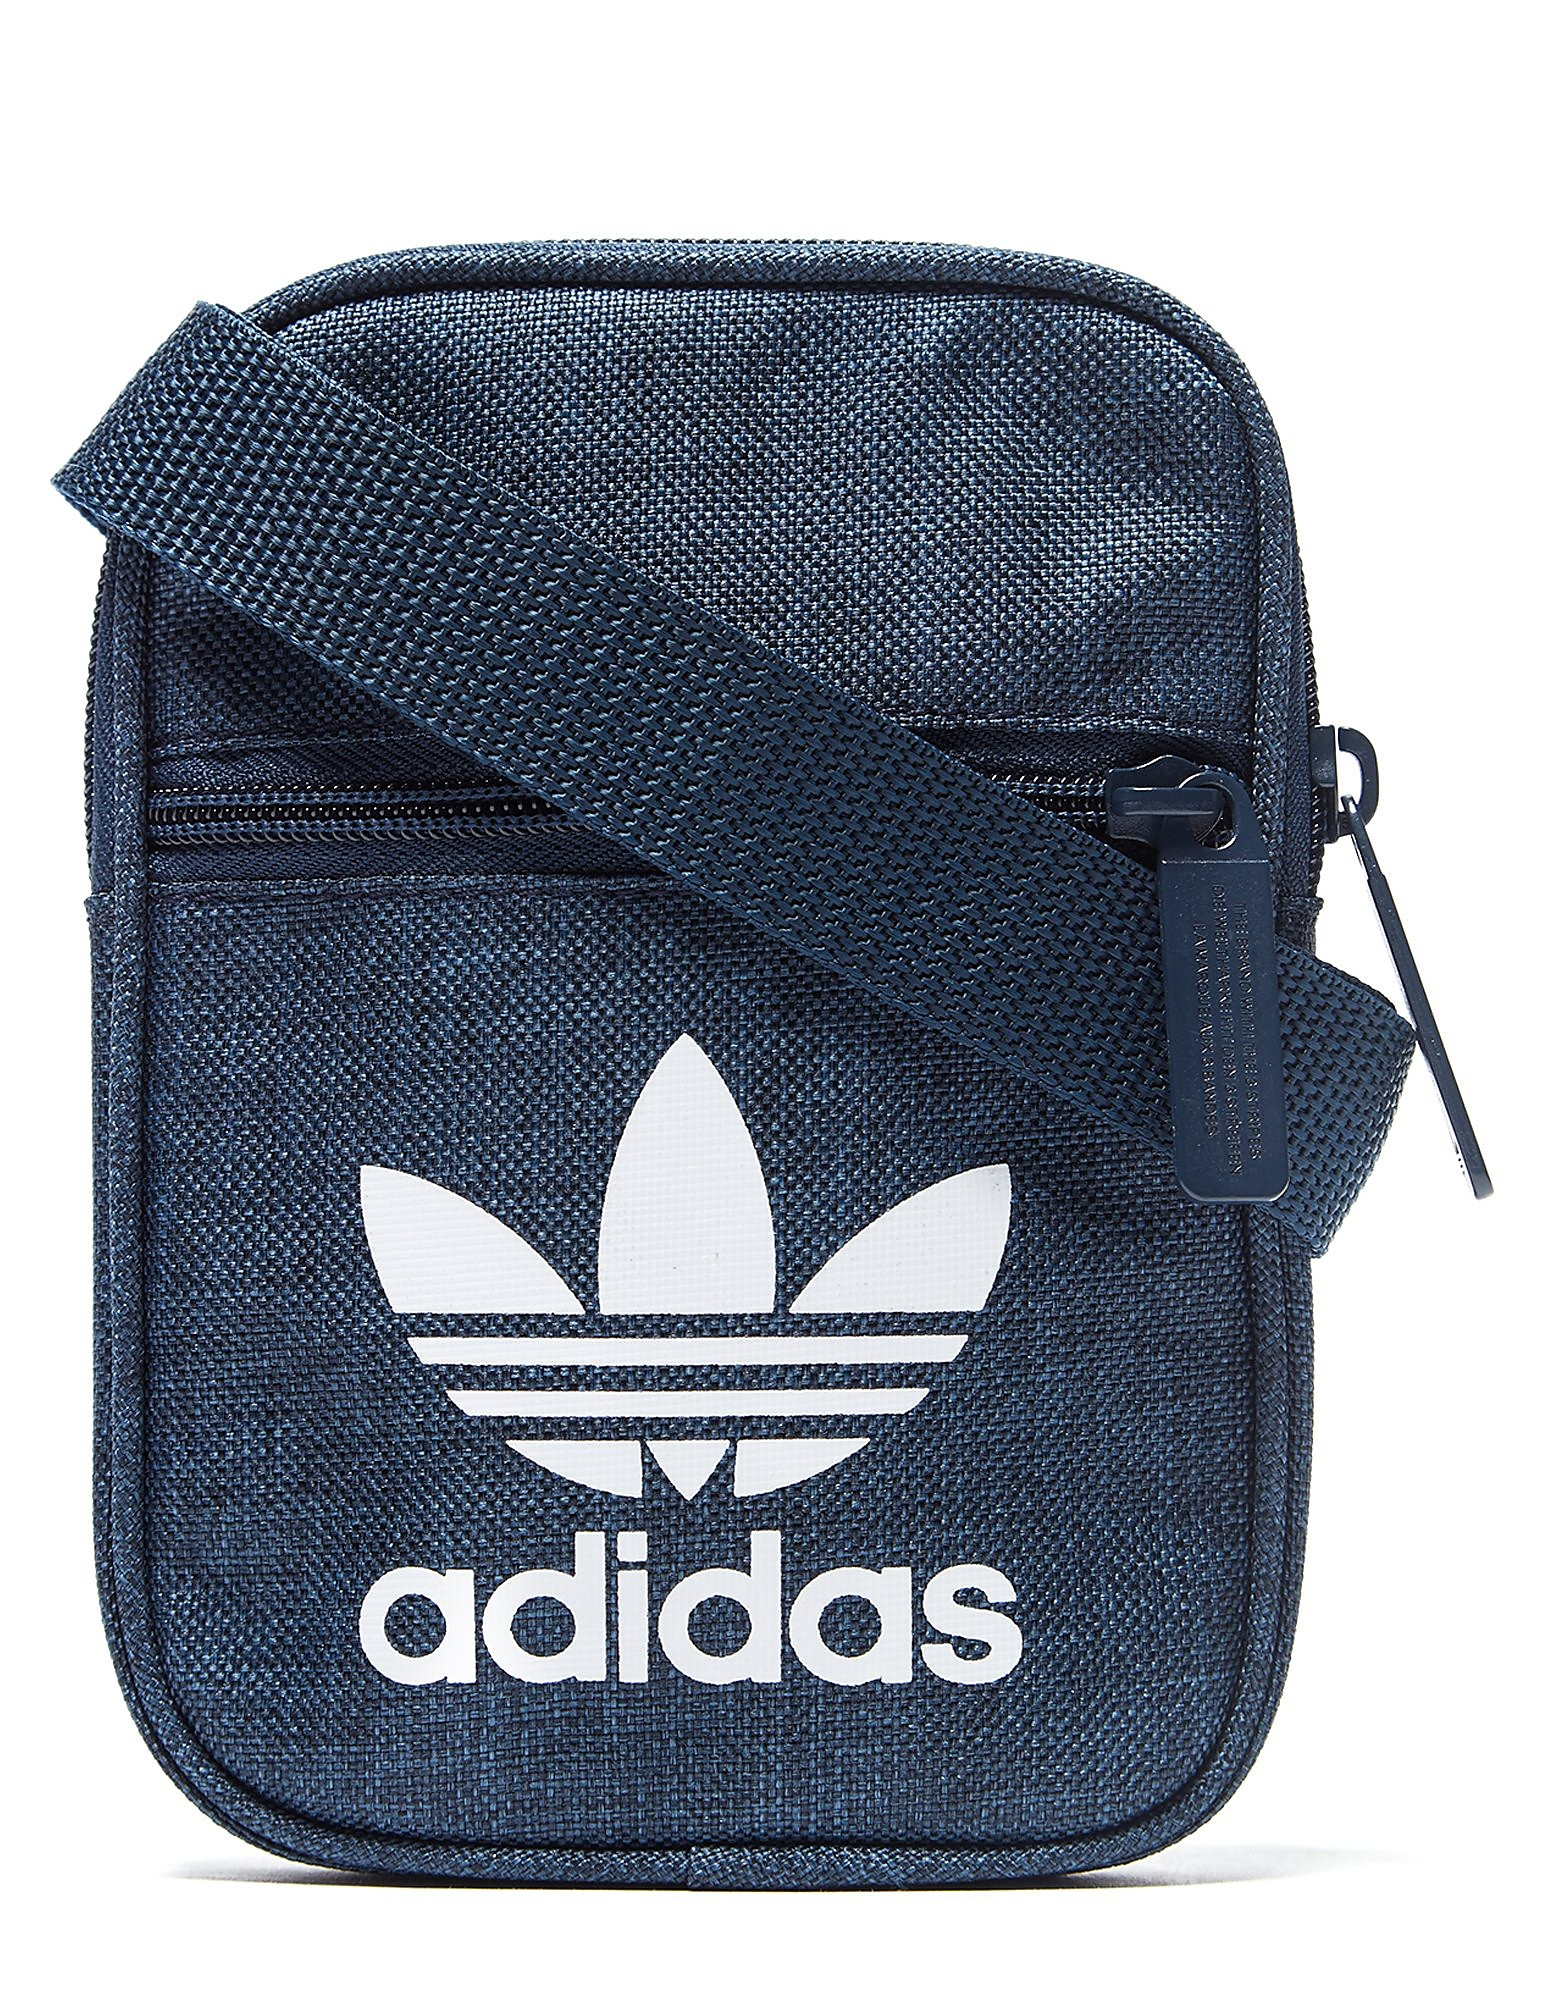 adidas Originals Denim Festival Bag